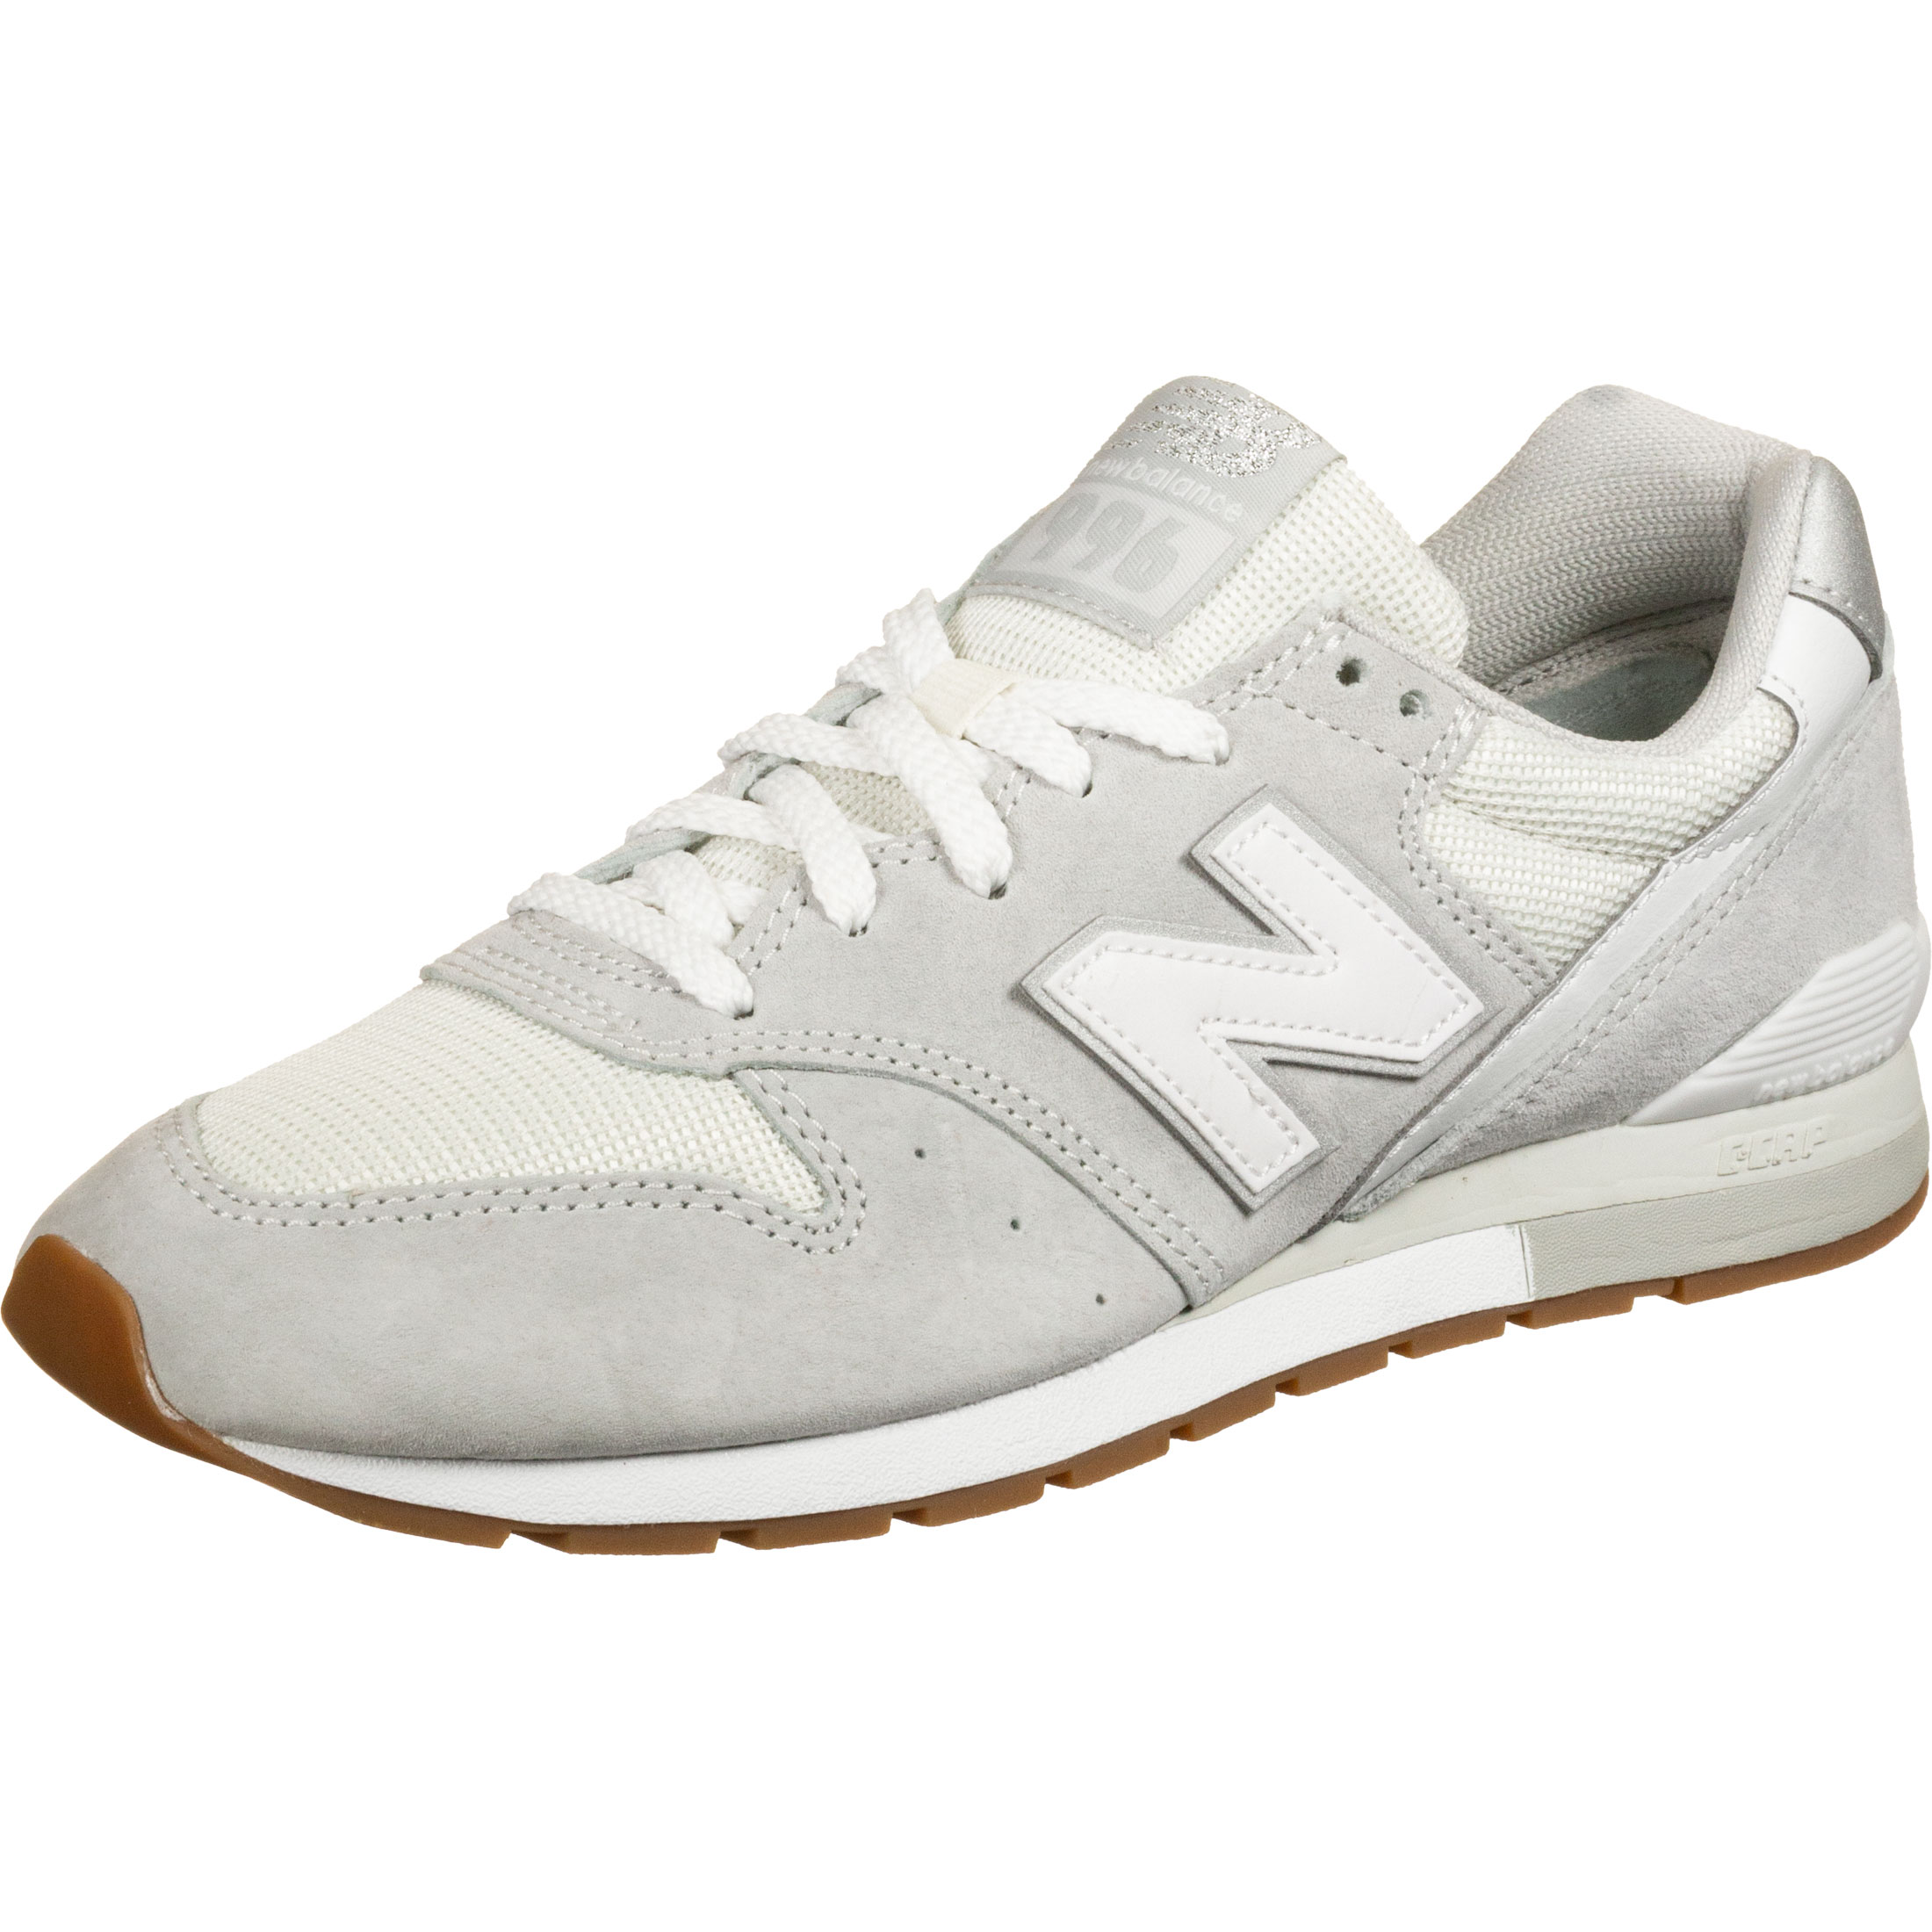 New Balance 996 - Sneakers Low at Stylefile